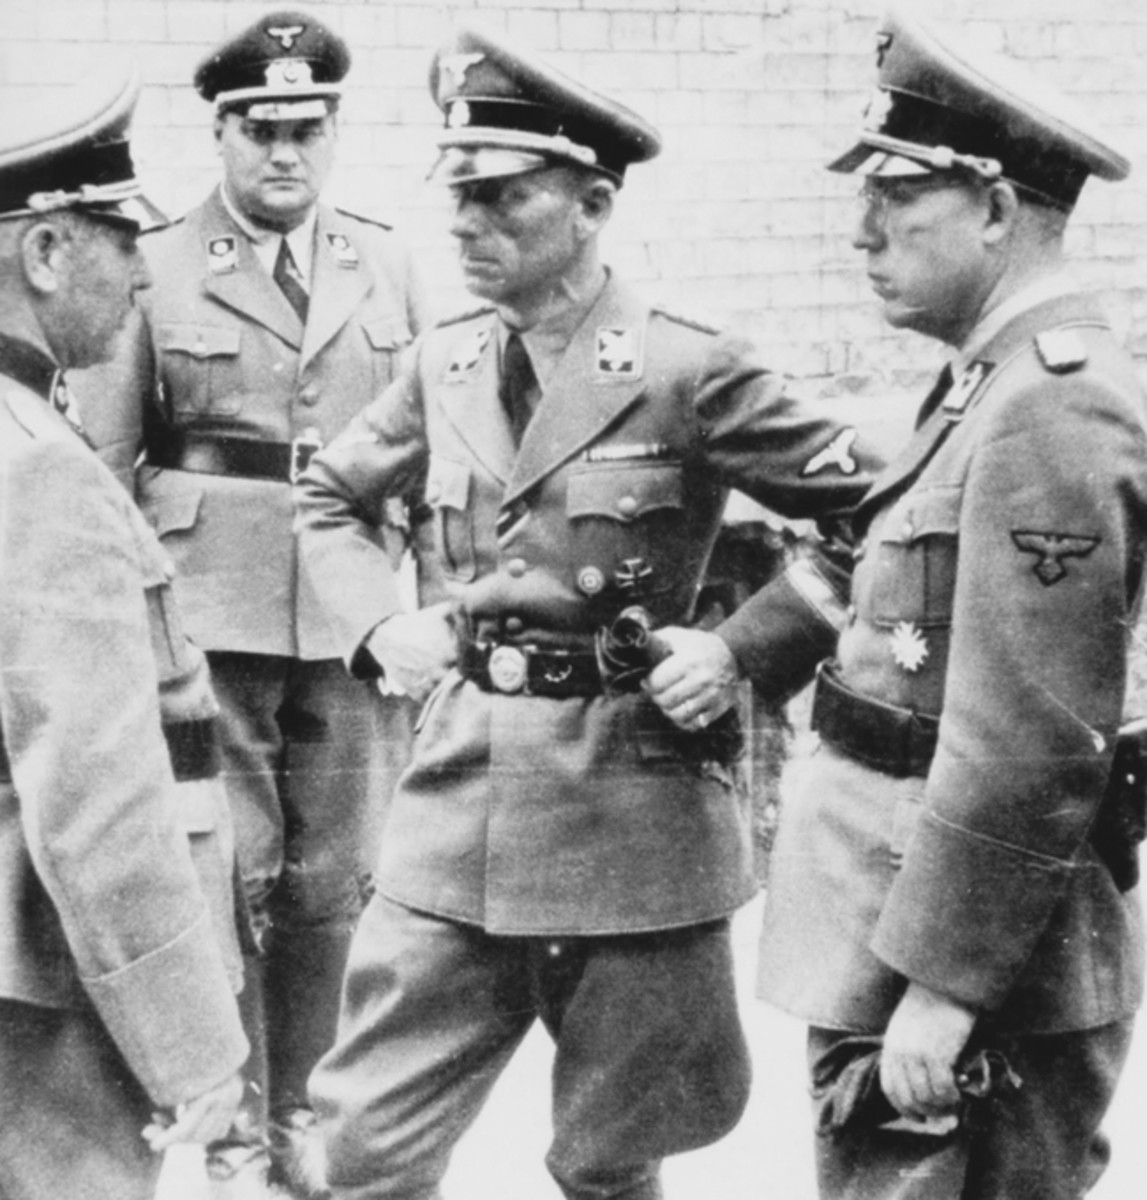 In October 1943, SS-Brigadeführer Willy Schmelcher took over command of the TeNo, a position he held until Germany surrendered to the Allies in May 1945.